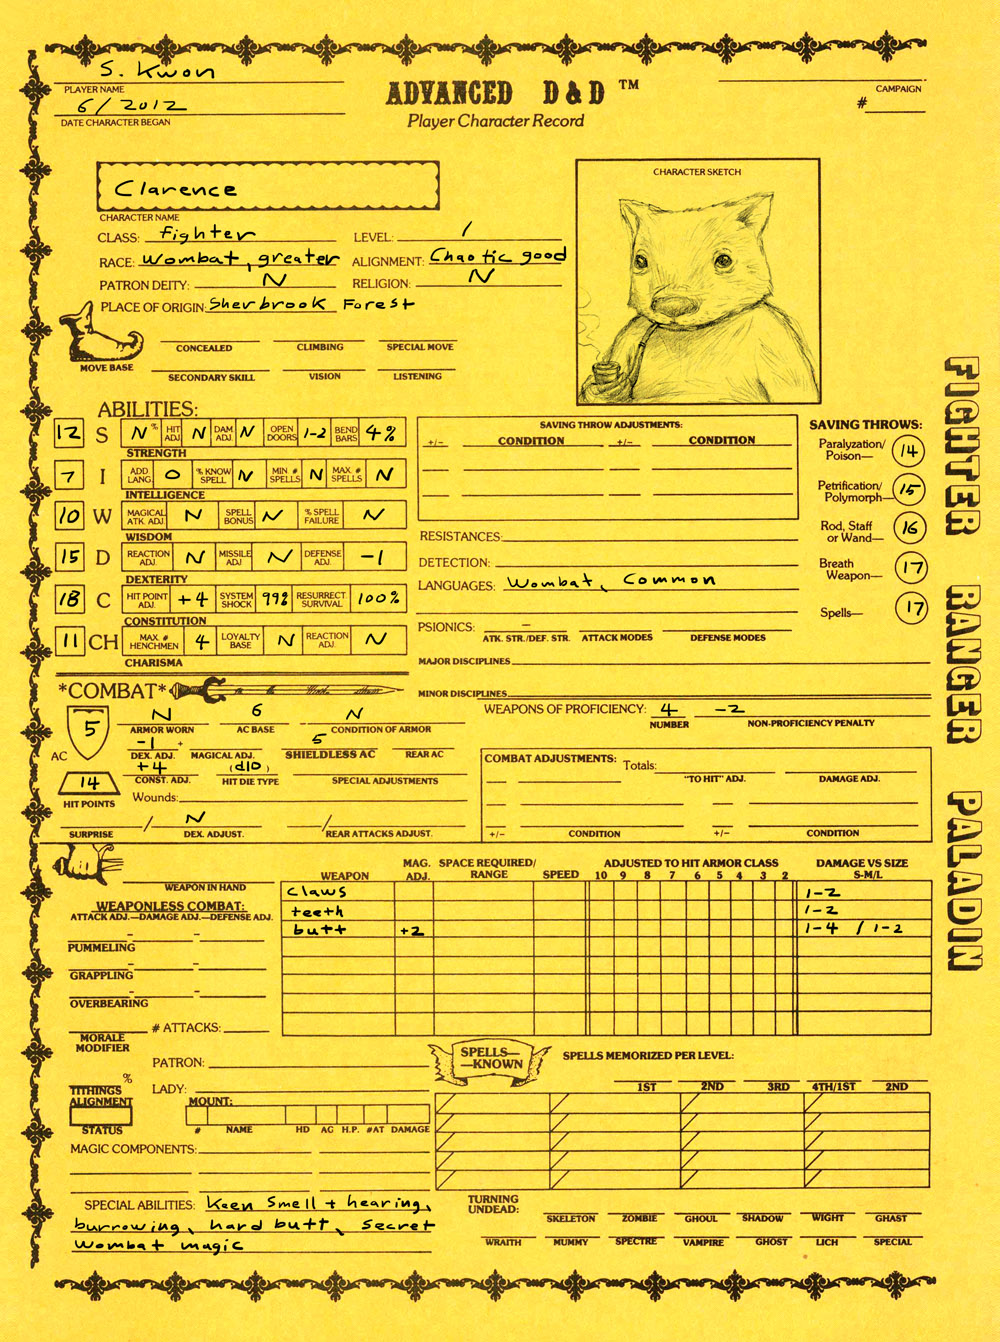 Clarence character sheet